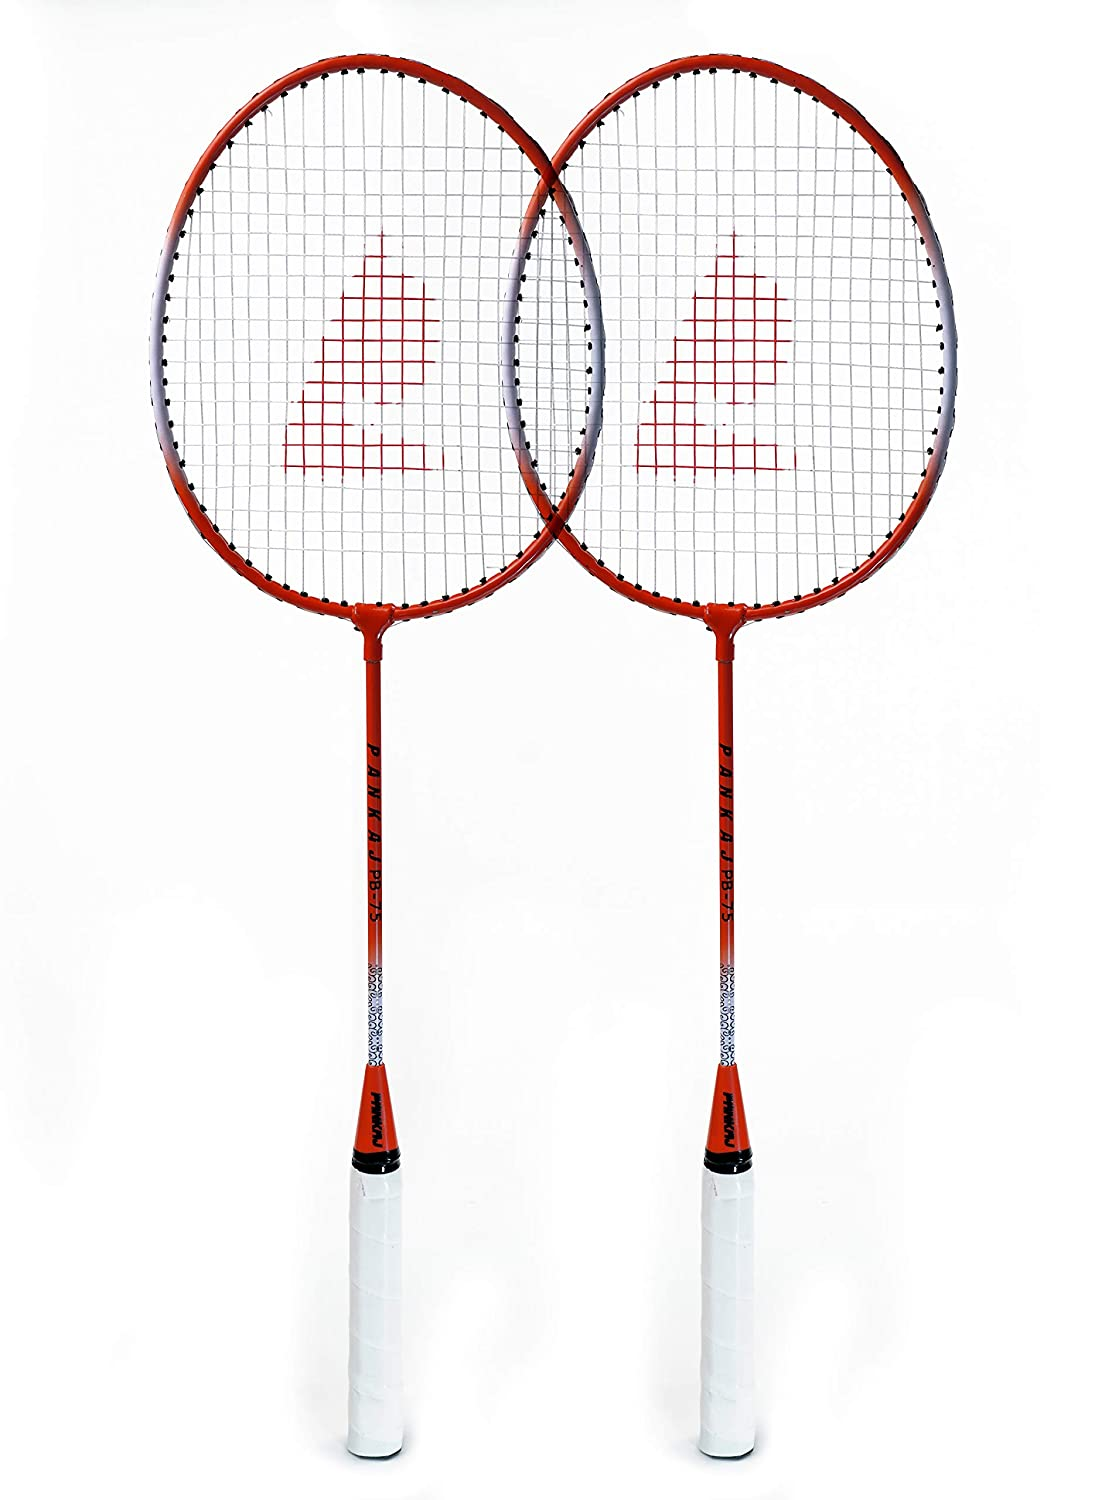 Badminton Racket - PB 75 - Pack for 2 (Red)